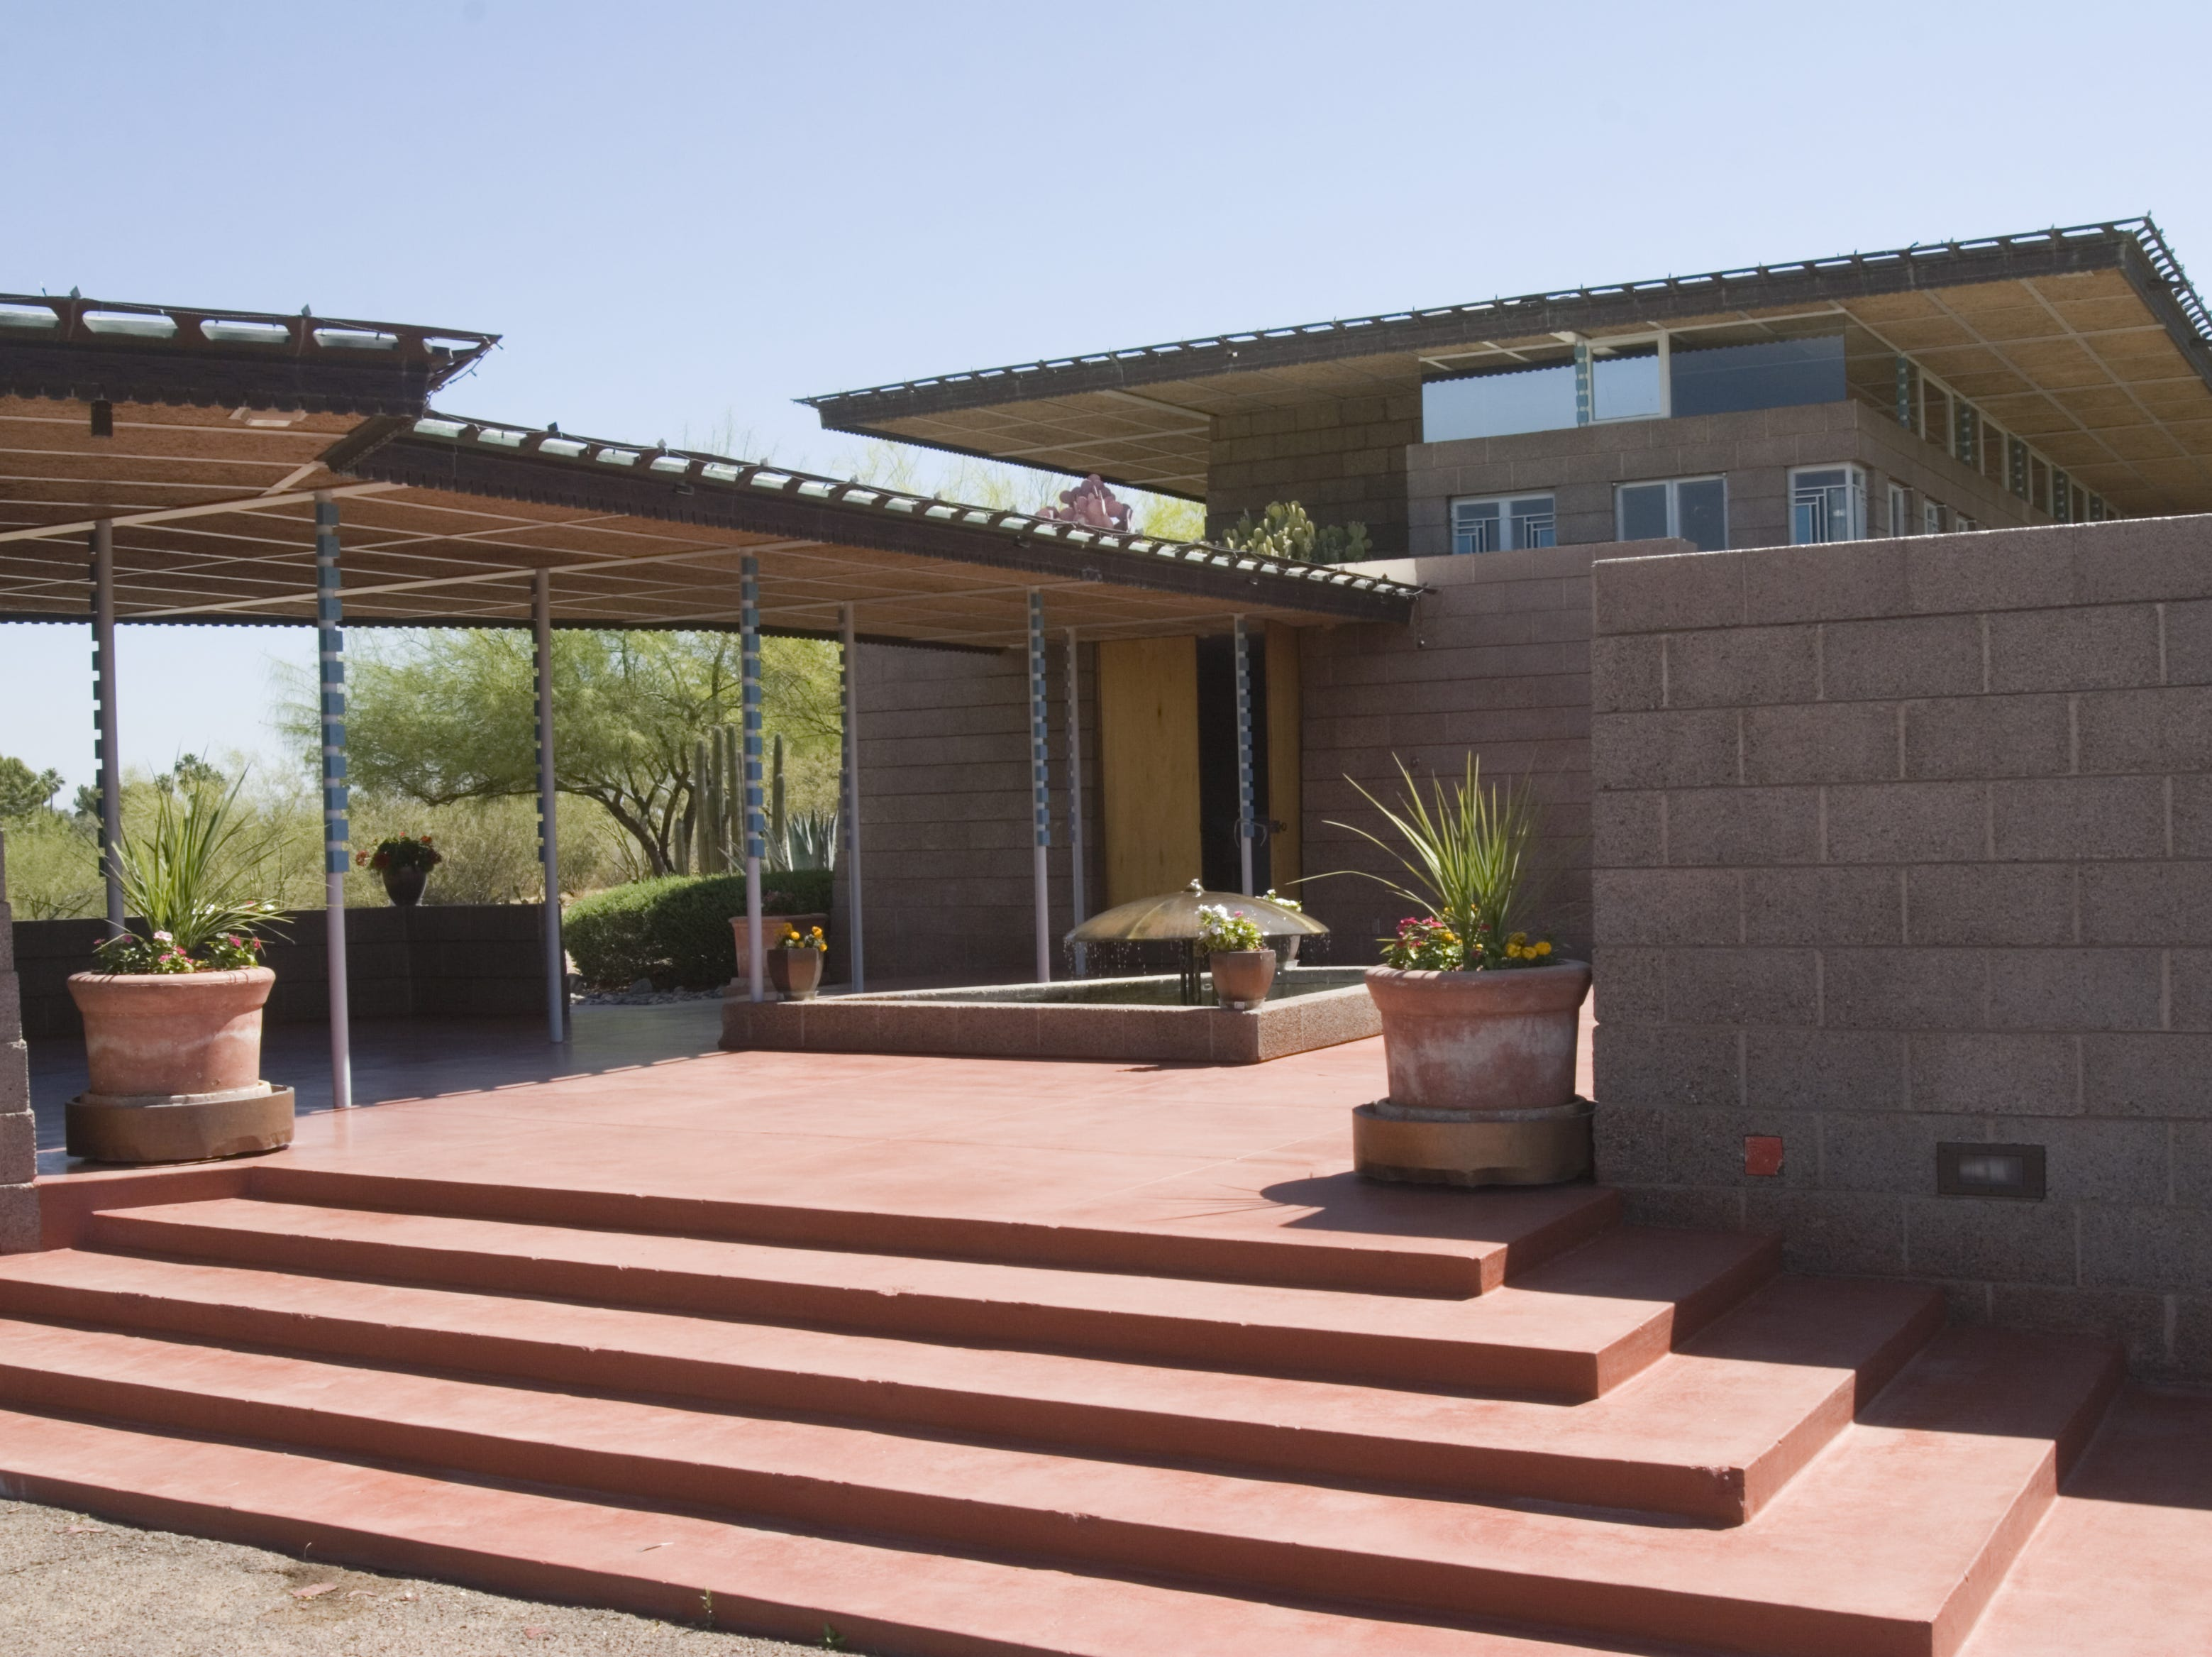 The Price House in Paradise Valley was designed by Frank Lloyd Wright.